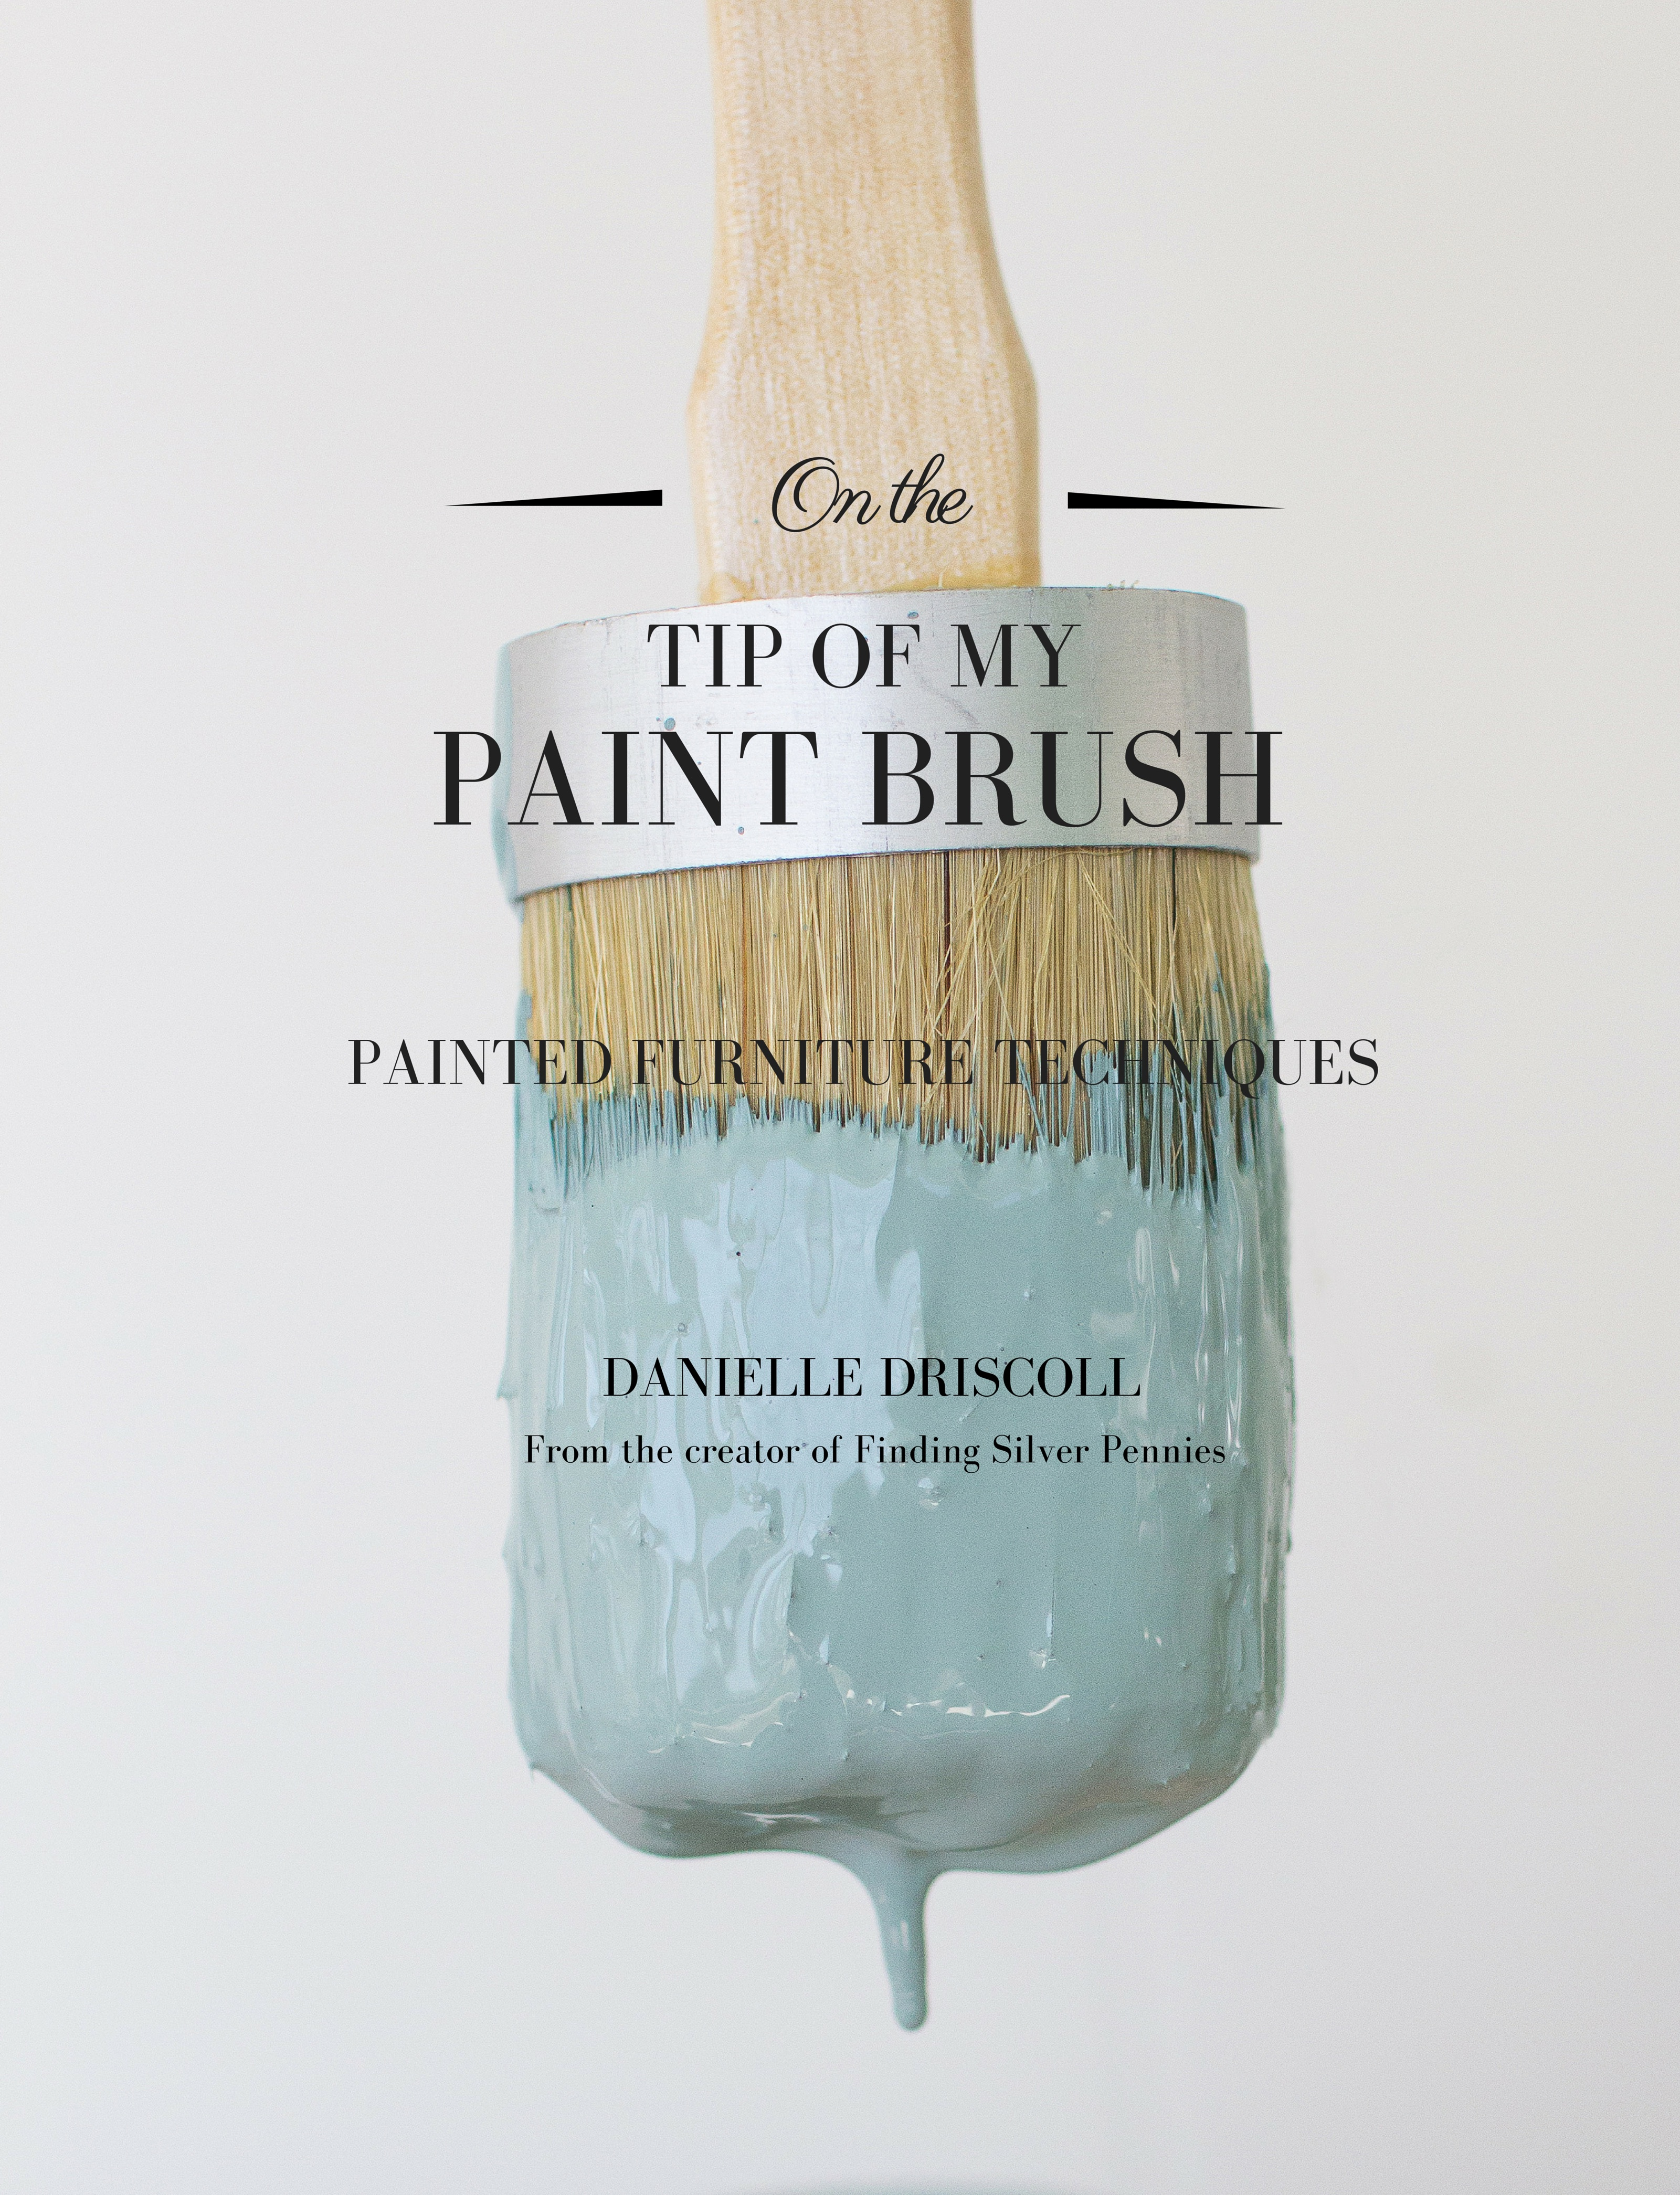 eBook all about painting furniture by Danielle Driscoll founder of Finding Silver Pennies